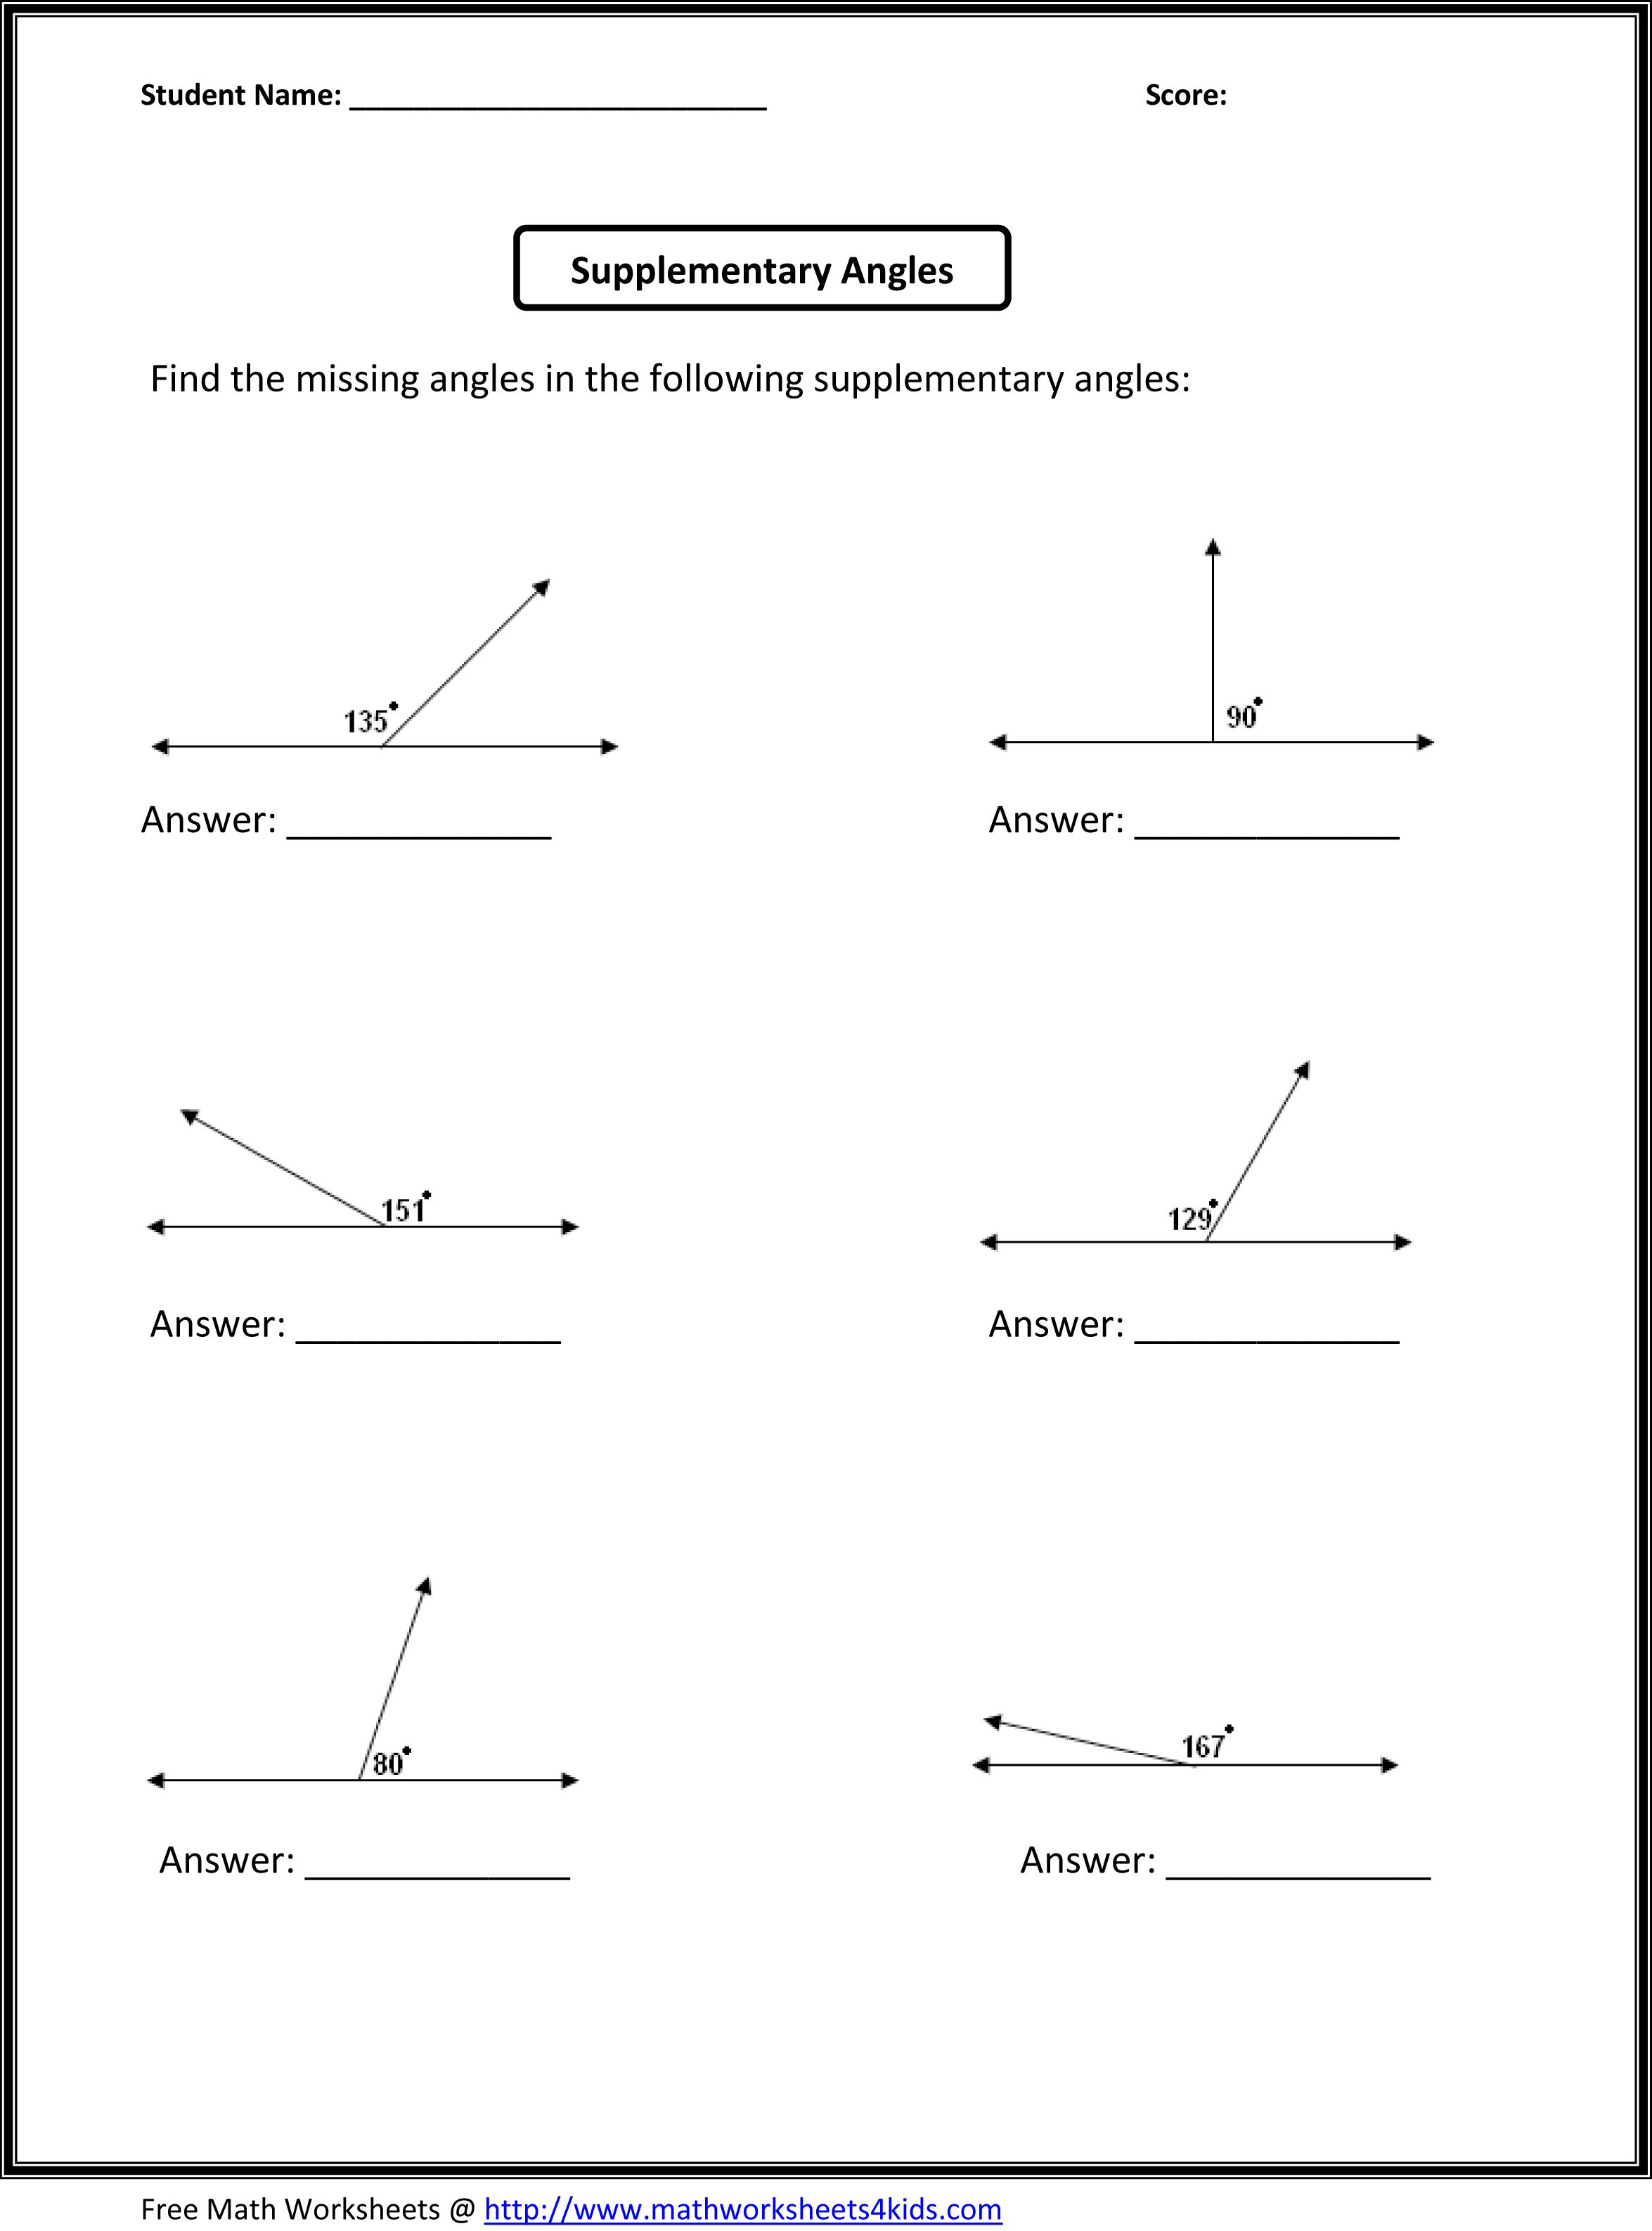 Printables Geometry Worksheets Pdf worksheet geometry for 6th grade noconformity free 1000 images about on pinterest pythagorean theorem angles and worksheets